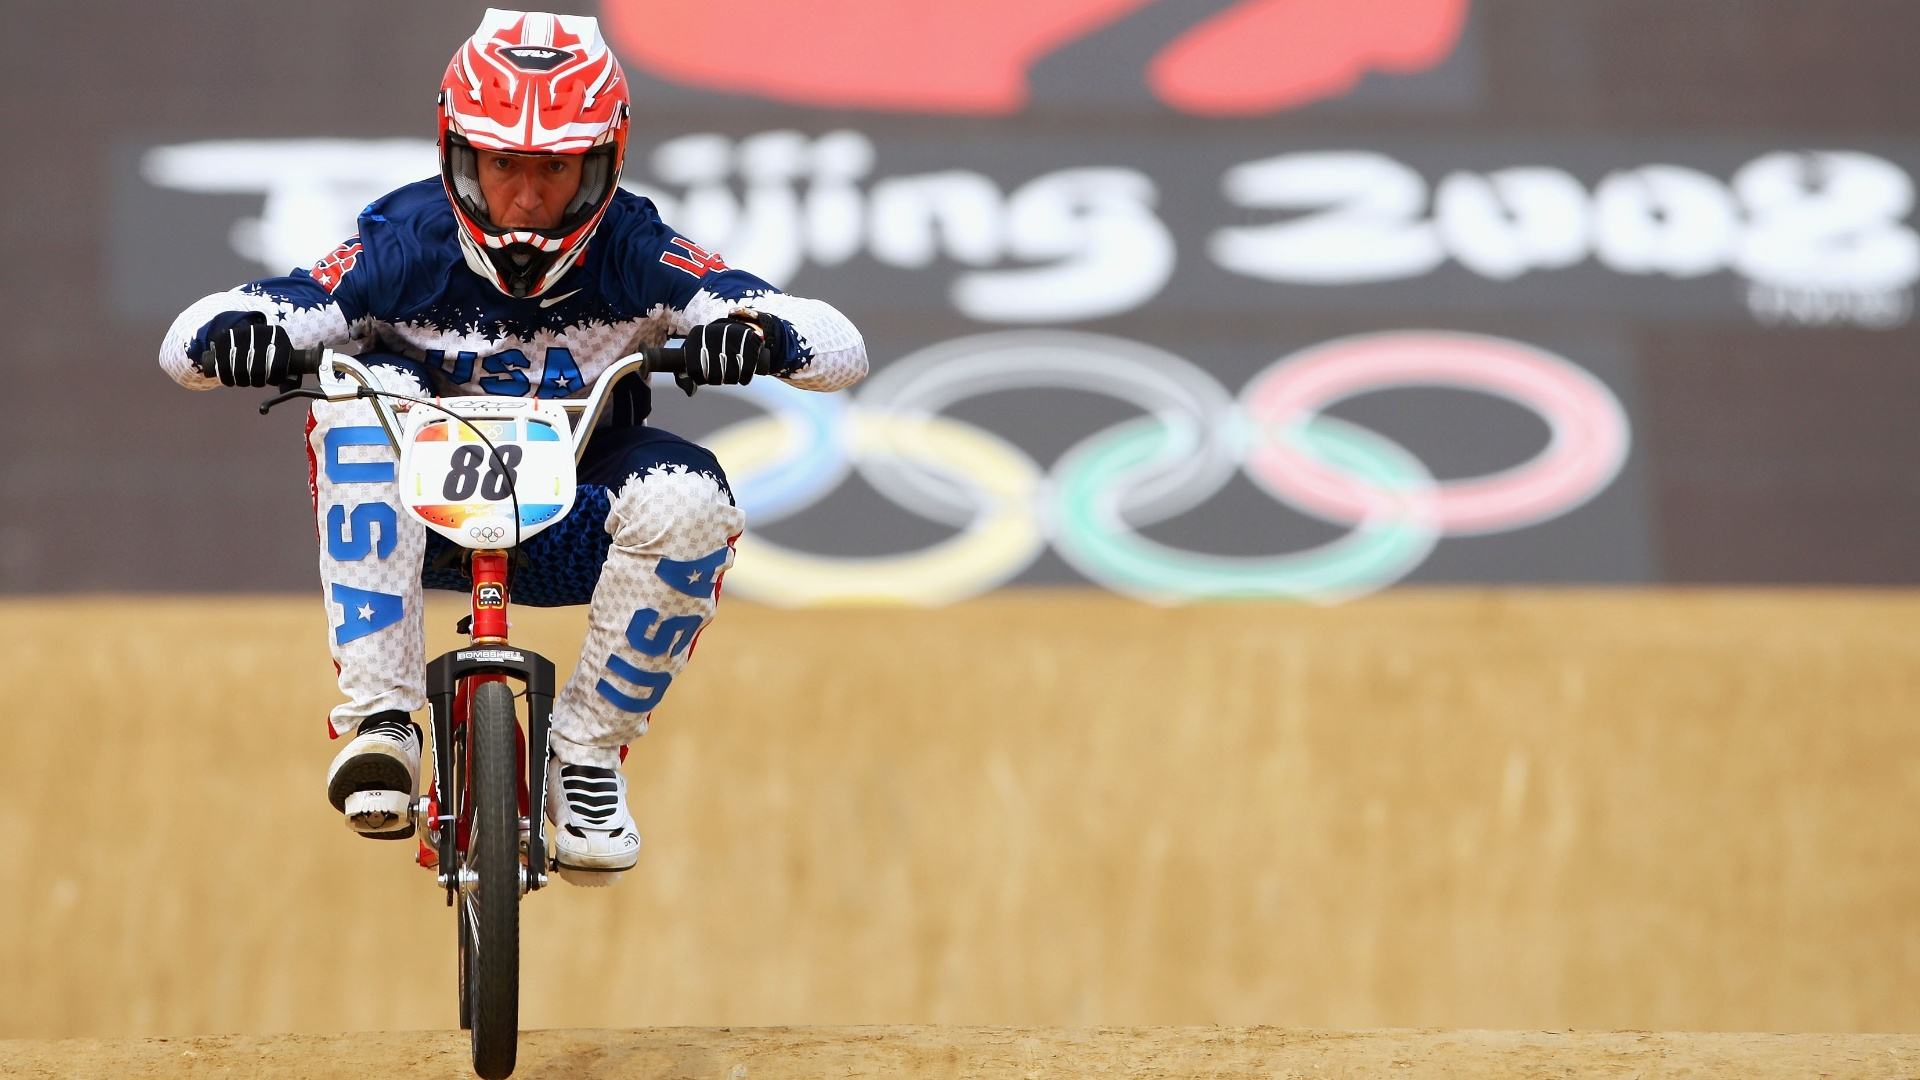 Kyle Bennett participa da Olimpada de Pequim-2008. Grande nome do BMX, o norte-americano morreu em 14/10/2012, aos 33 anos, aps se envolver em acidente de trnsito